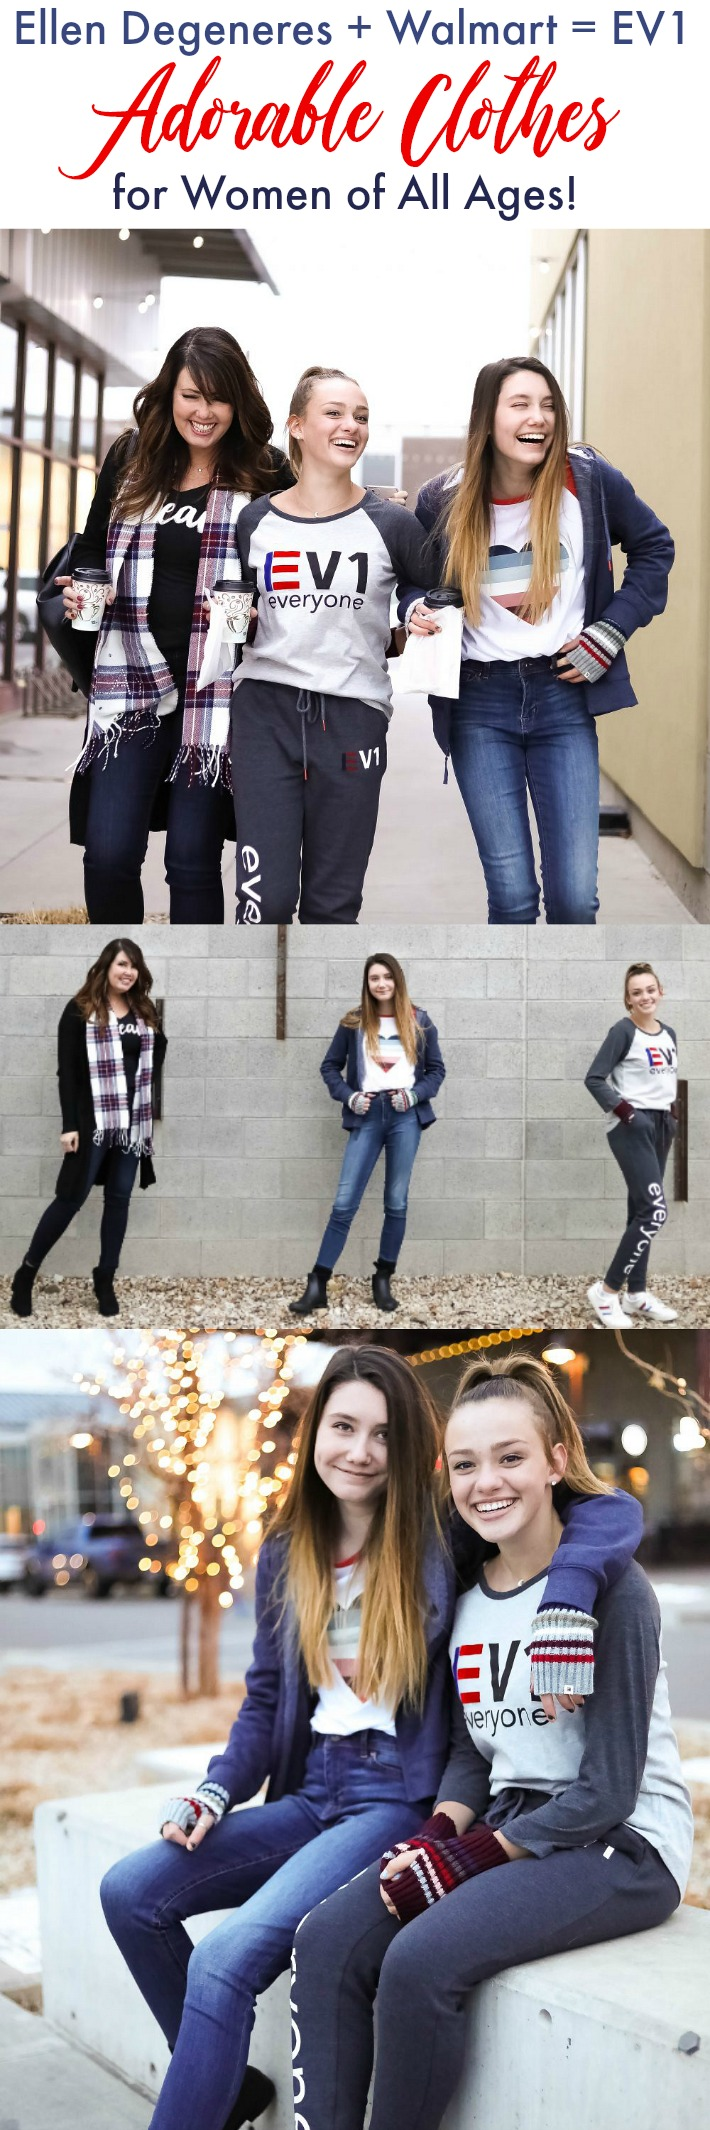 Ellen Degeneres and Walmart have partnered to share EV1, a line of high-quality, affordable, stylish clothing for every woman. I am sharing some of our favorite items from the EV1 line.